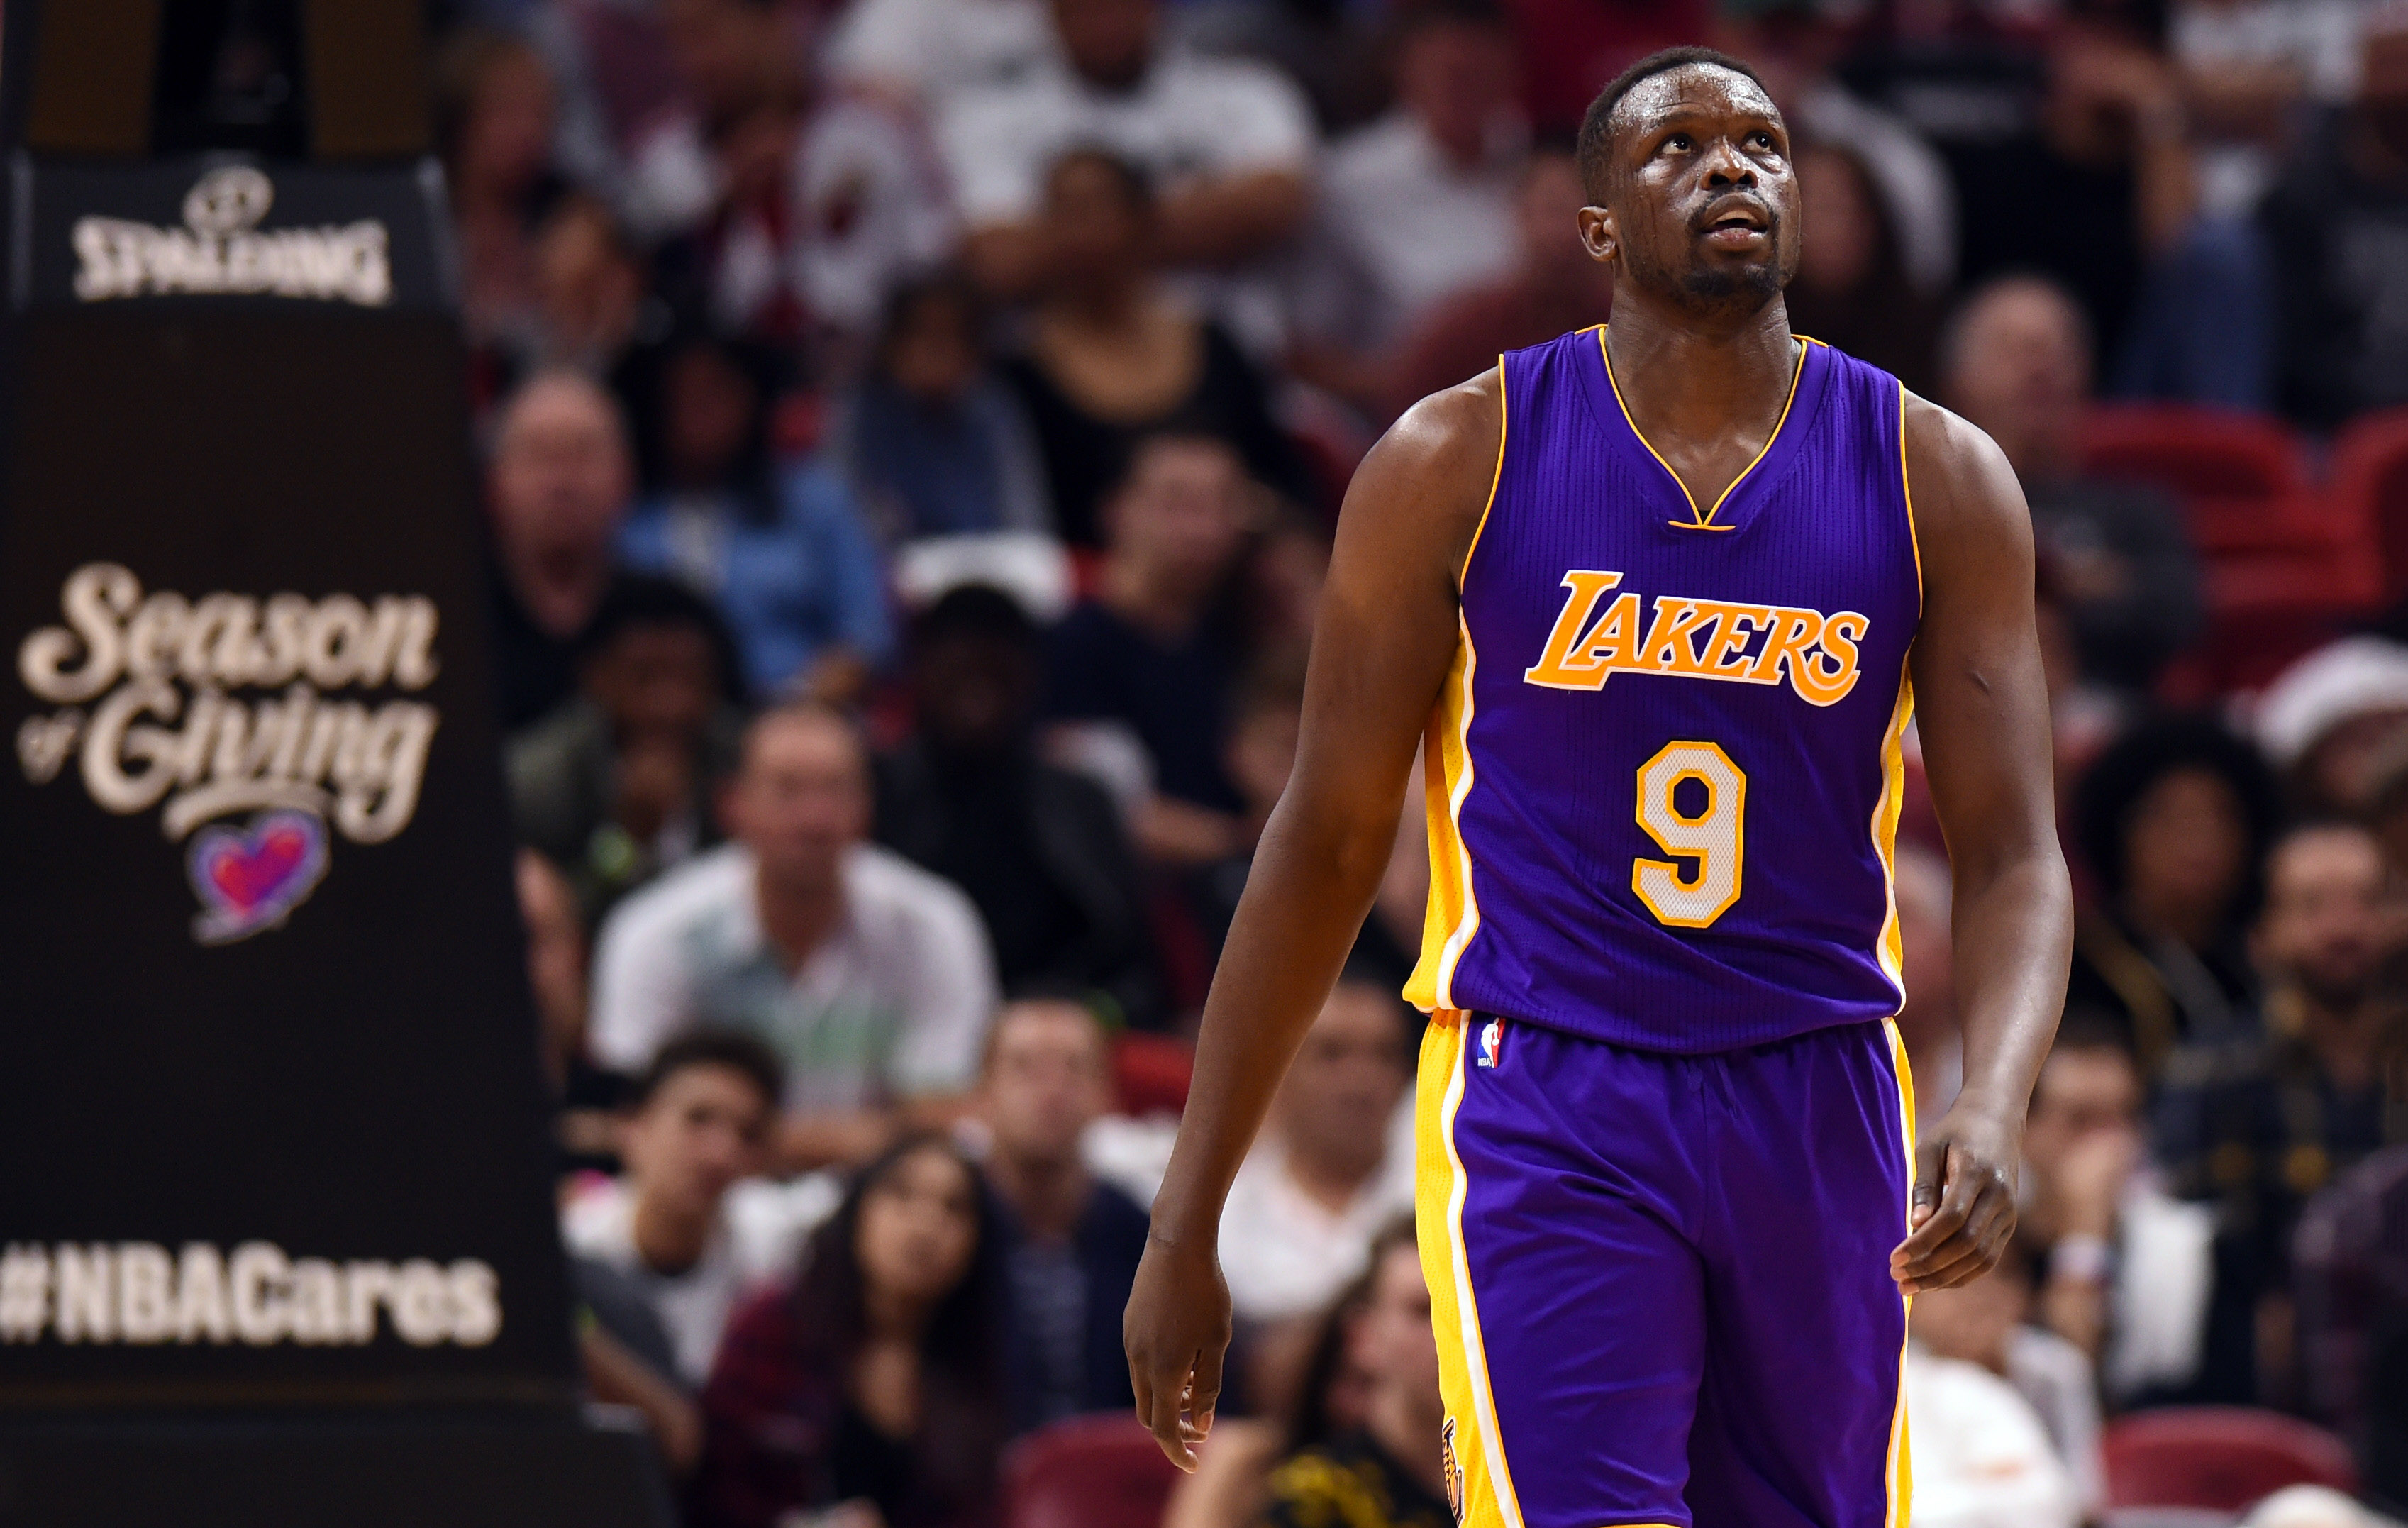 Lakers 3 Potential Landing Spots for Luol Deng